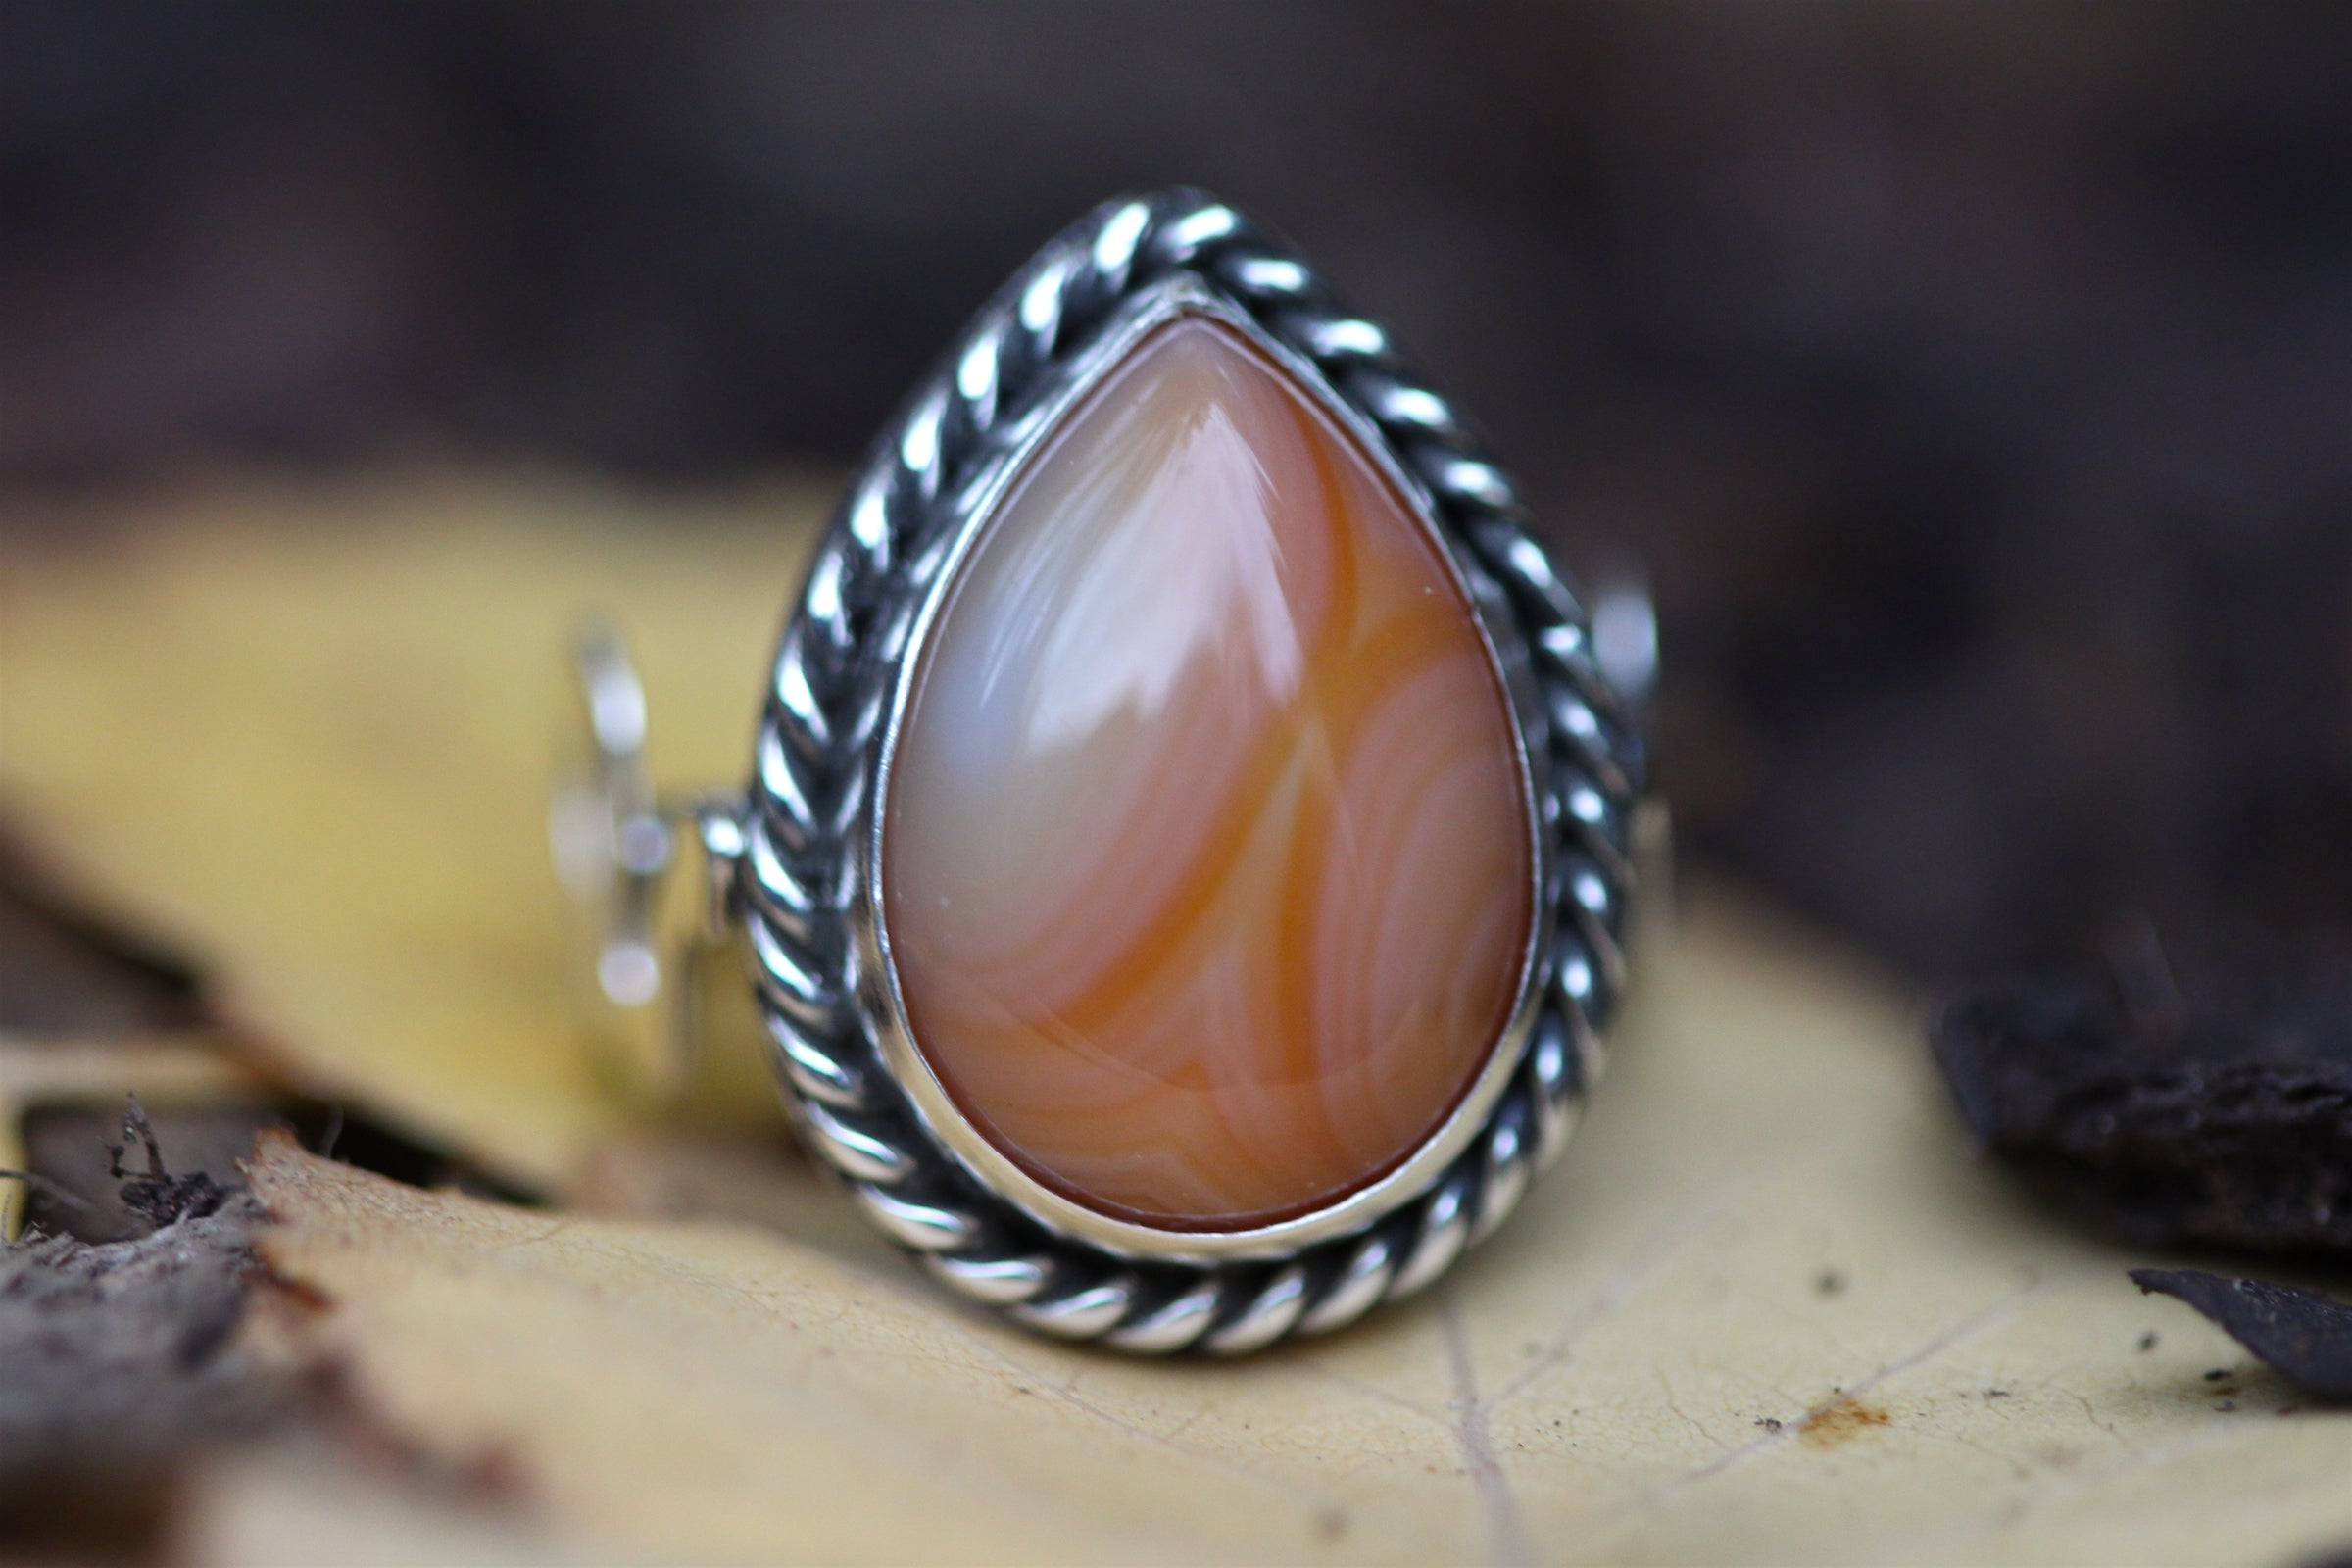 SERPENTS FIRE Handmade Sterling Silver Serpent Ring with Carnelian - Size N/6.5